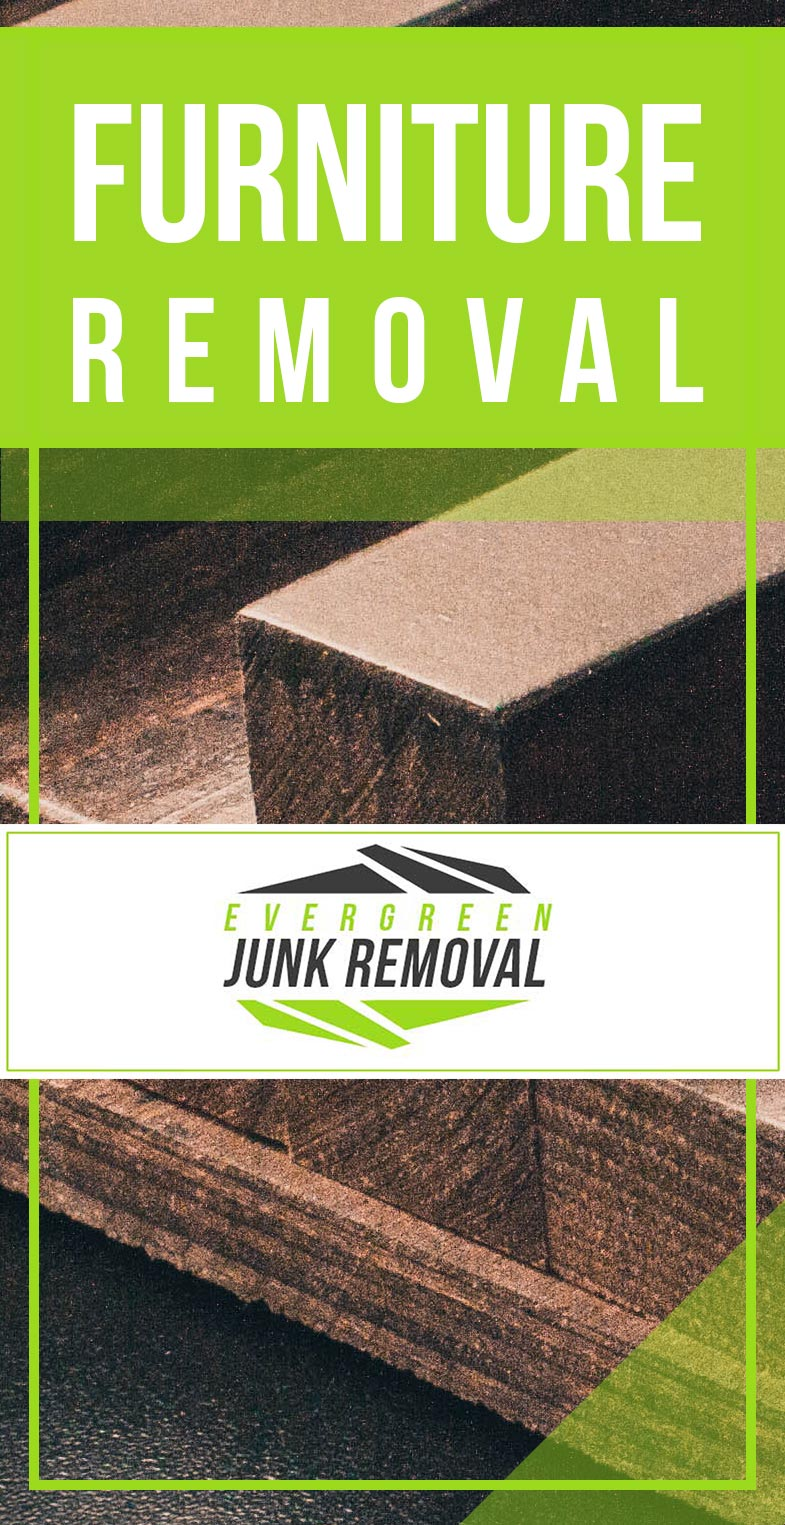 Junk Removal Hypoluxo Furniture Removal